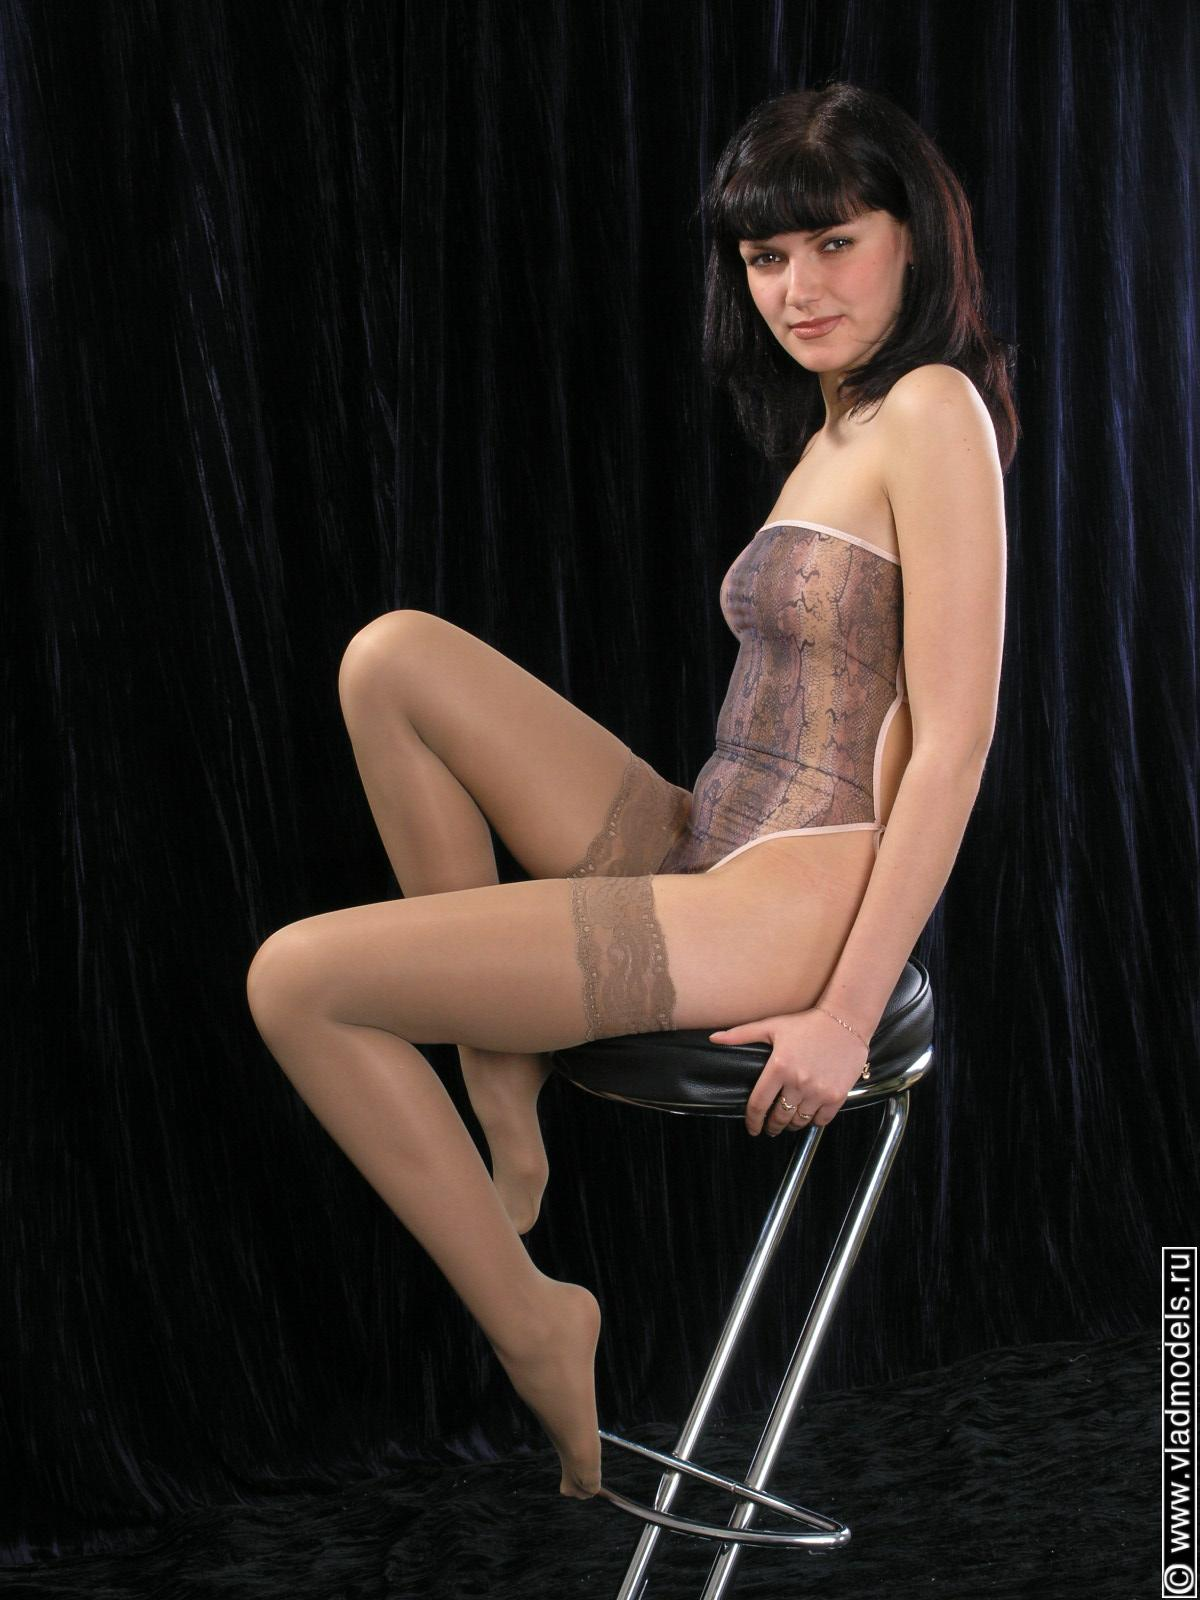 Want alisa vlad model pantyhose yes!!!!